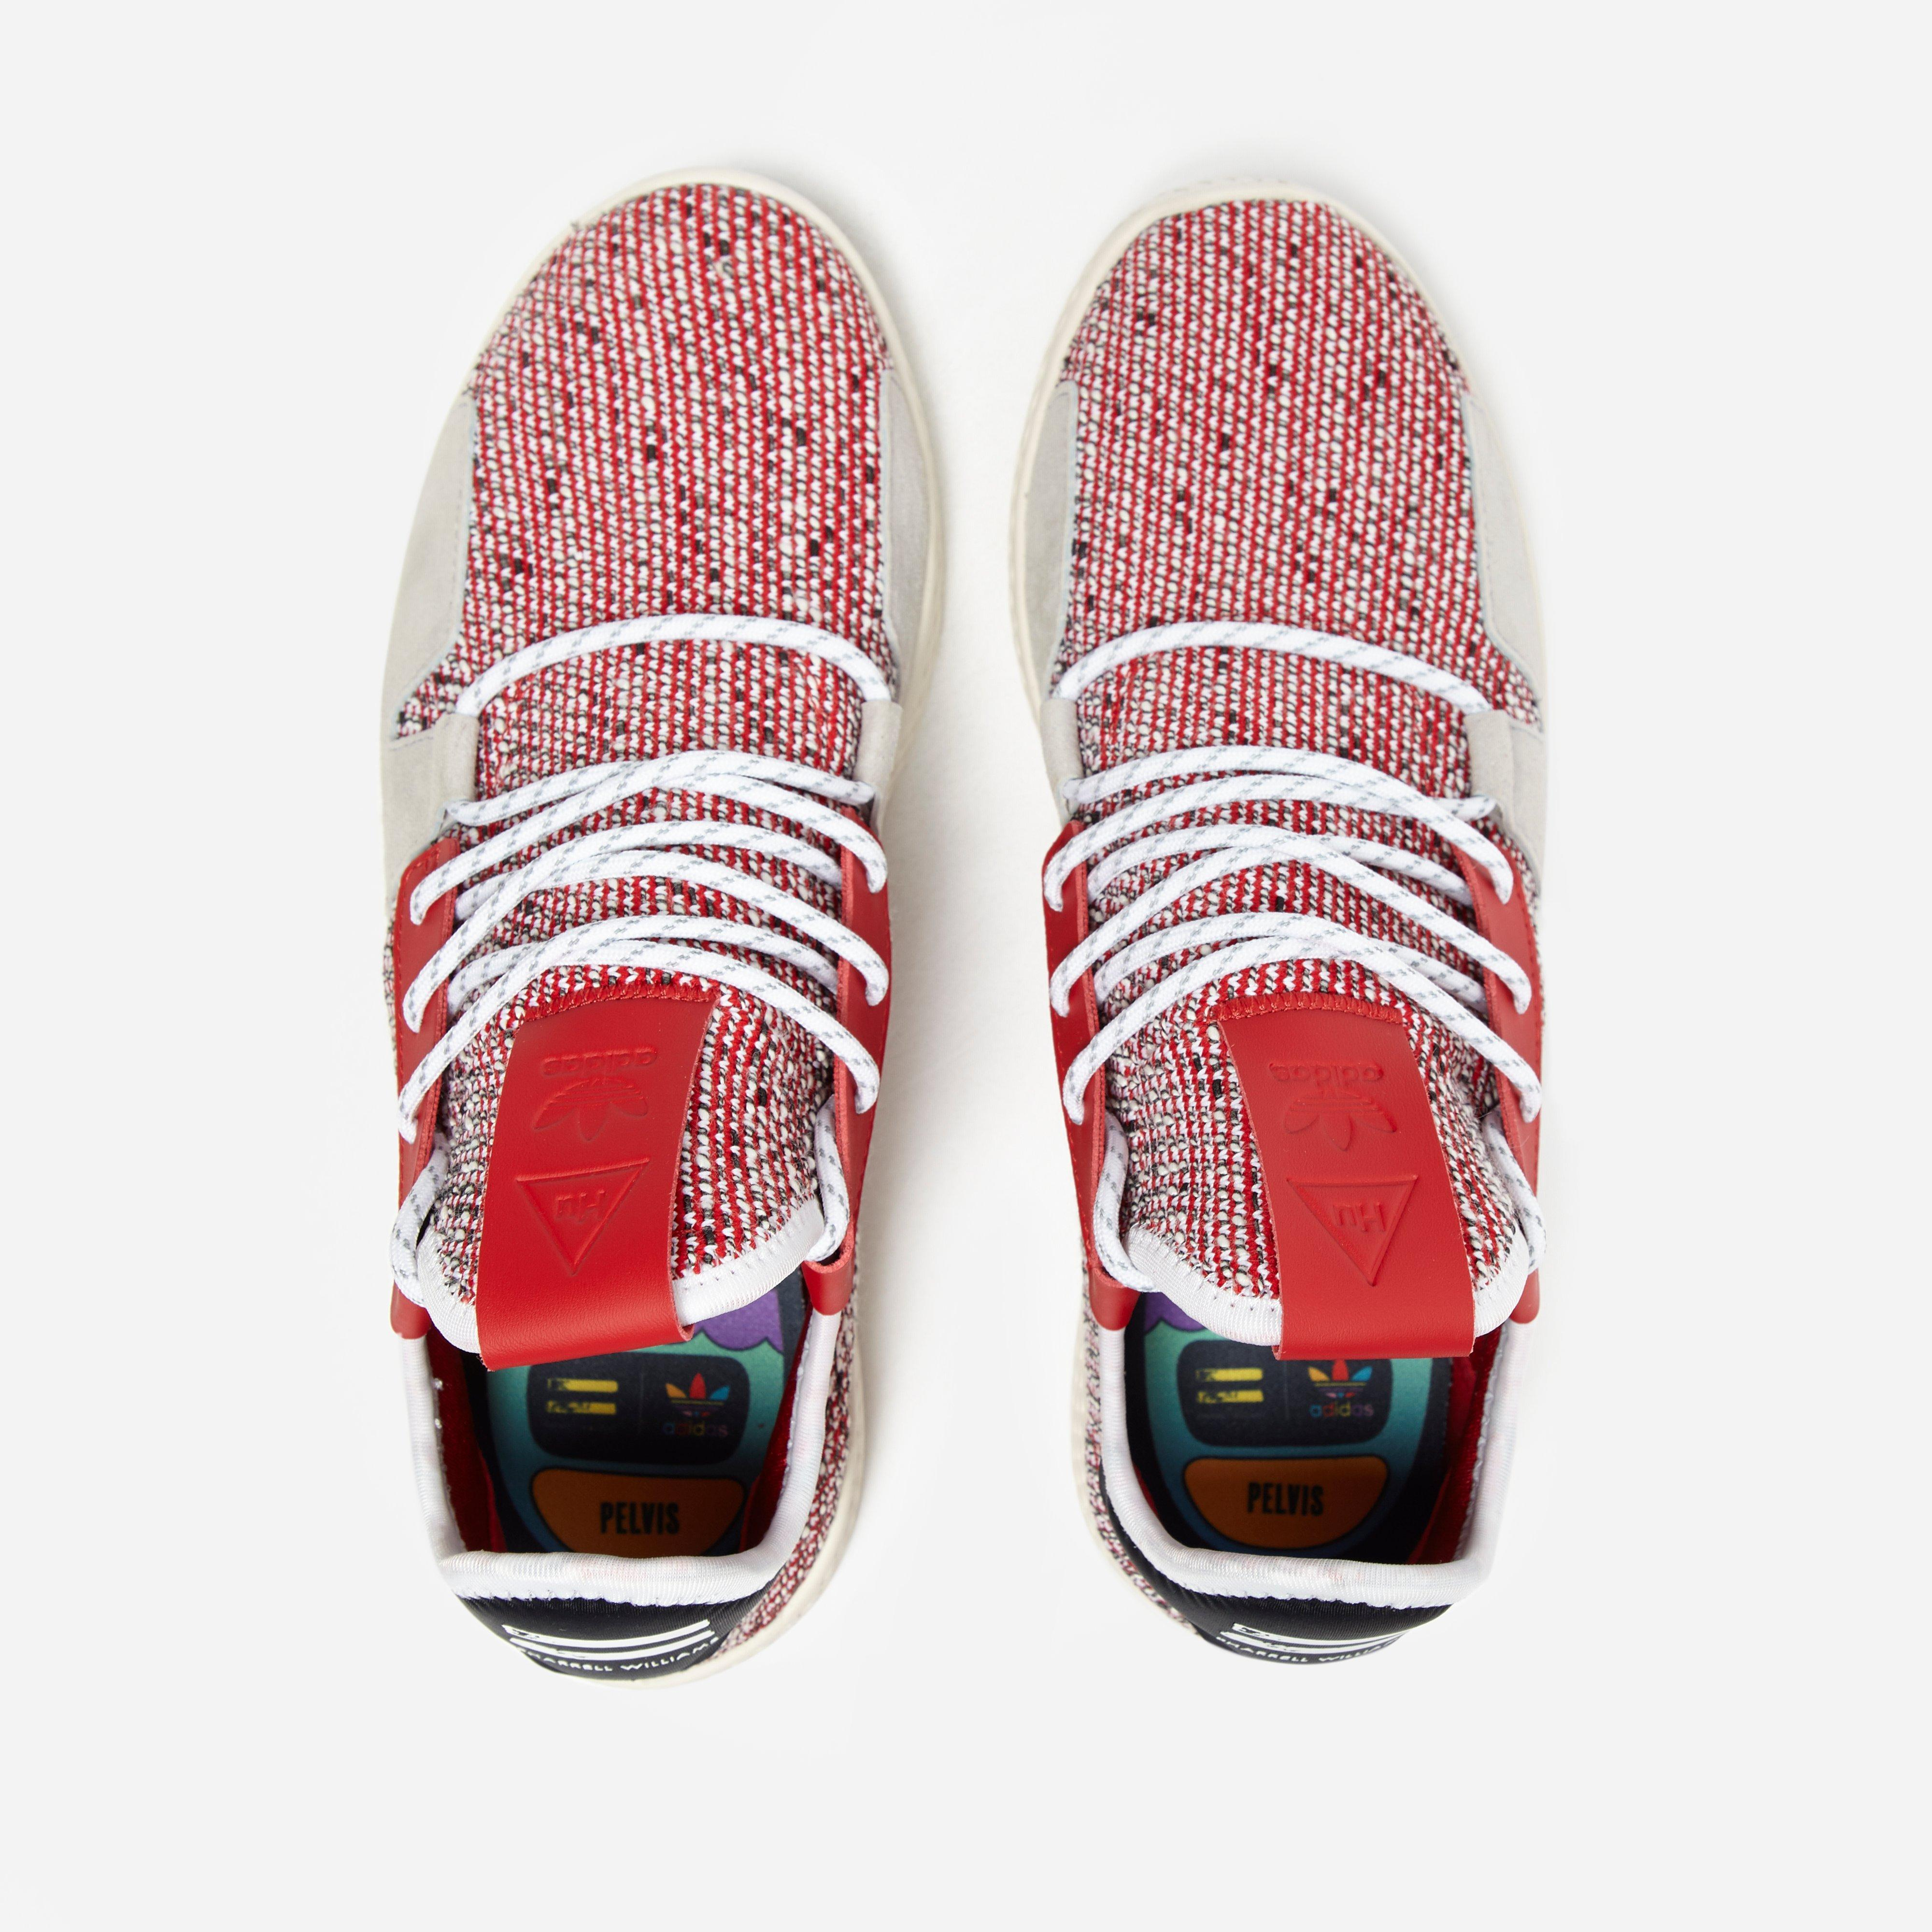 7c1bff7bb Adidas Originals - Red X Pharrell Williams Solar Hu Tennis V2  afro Pack   for. View fullscreen